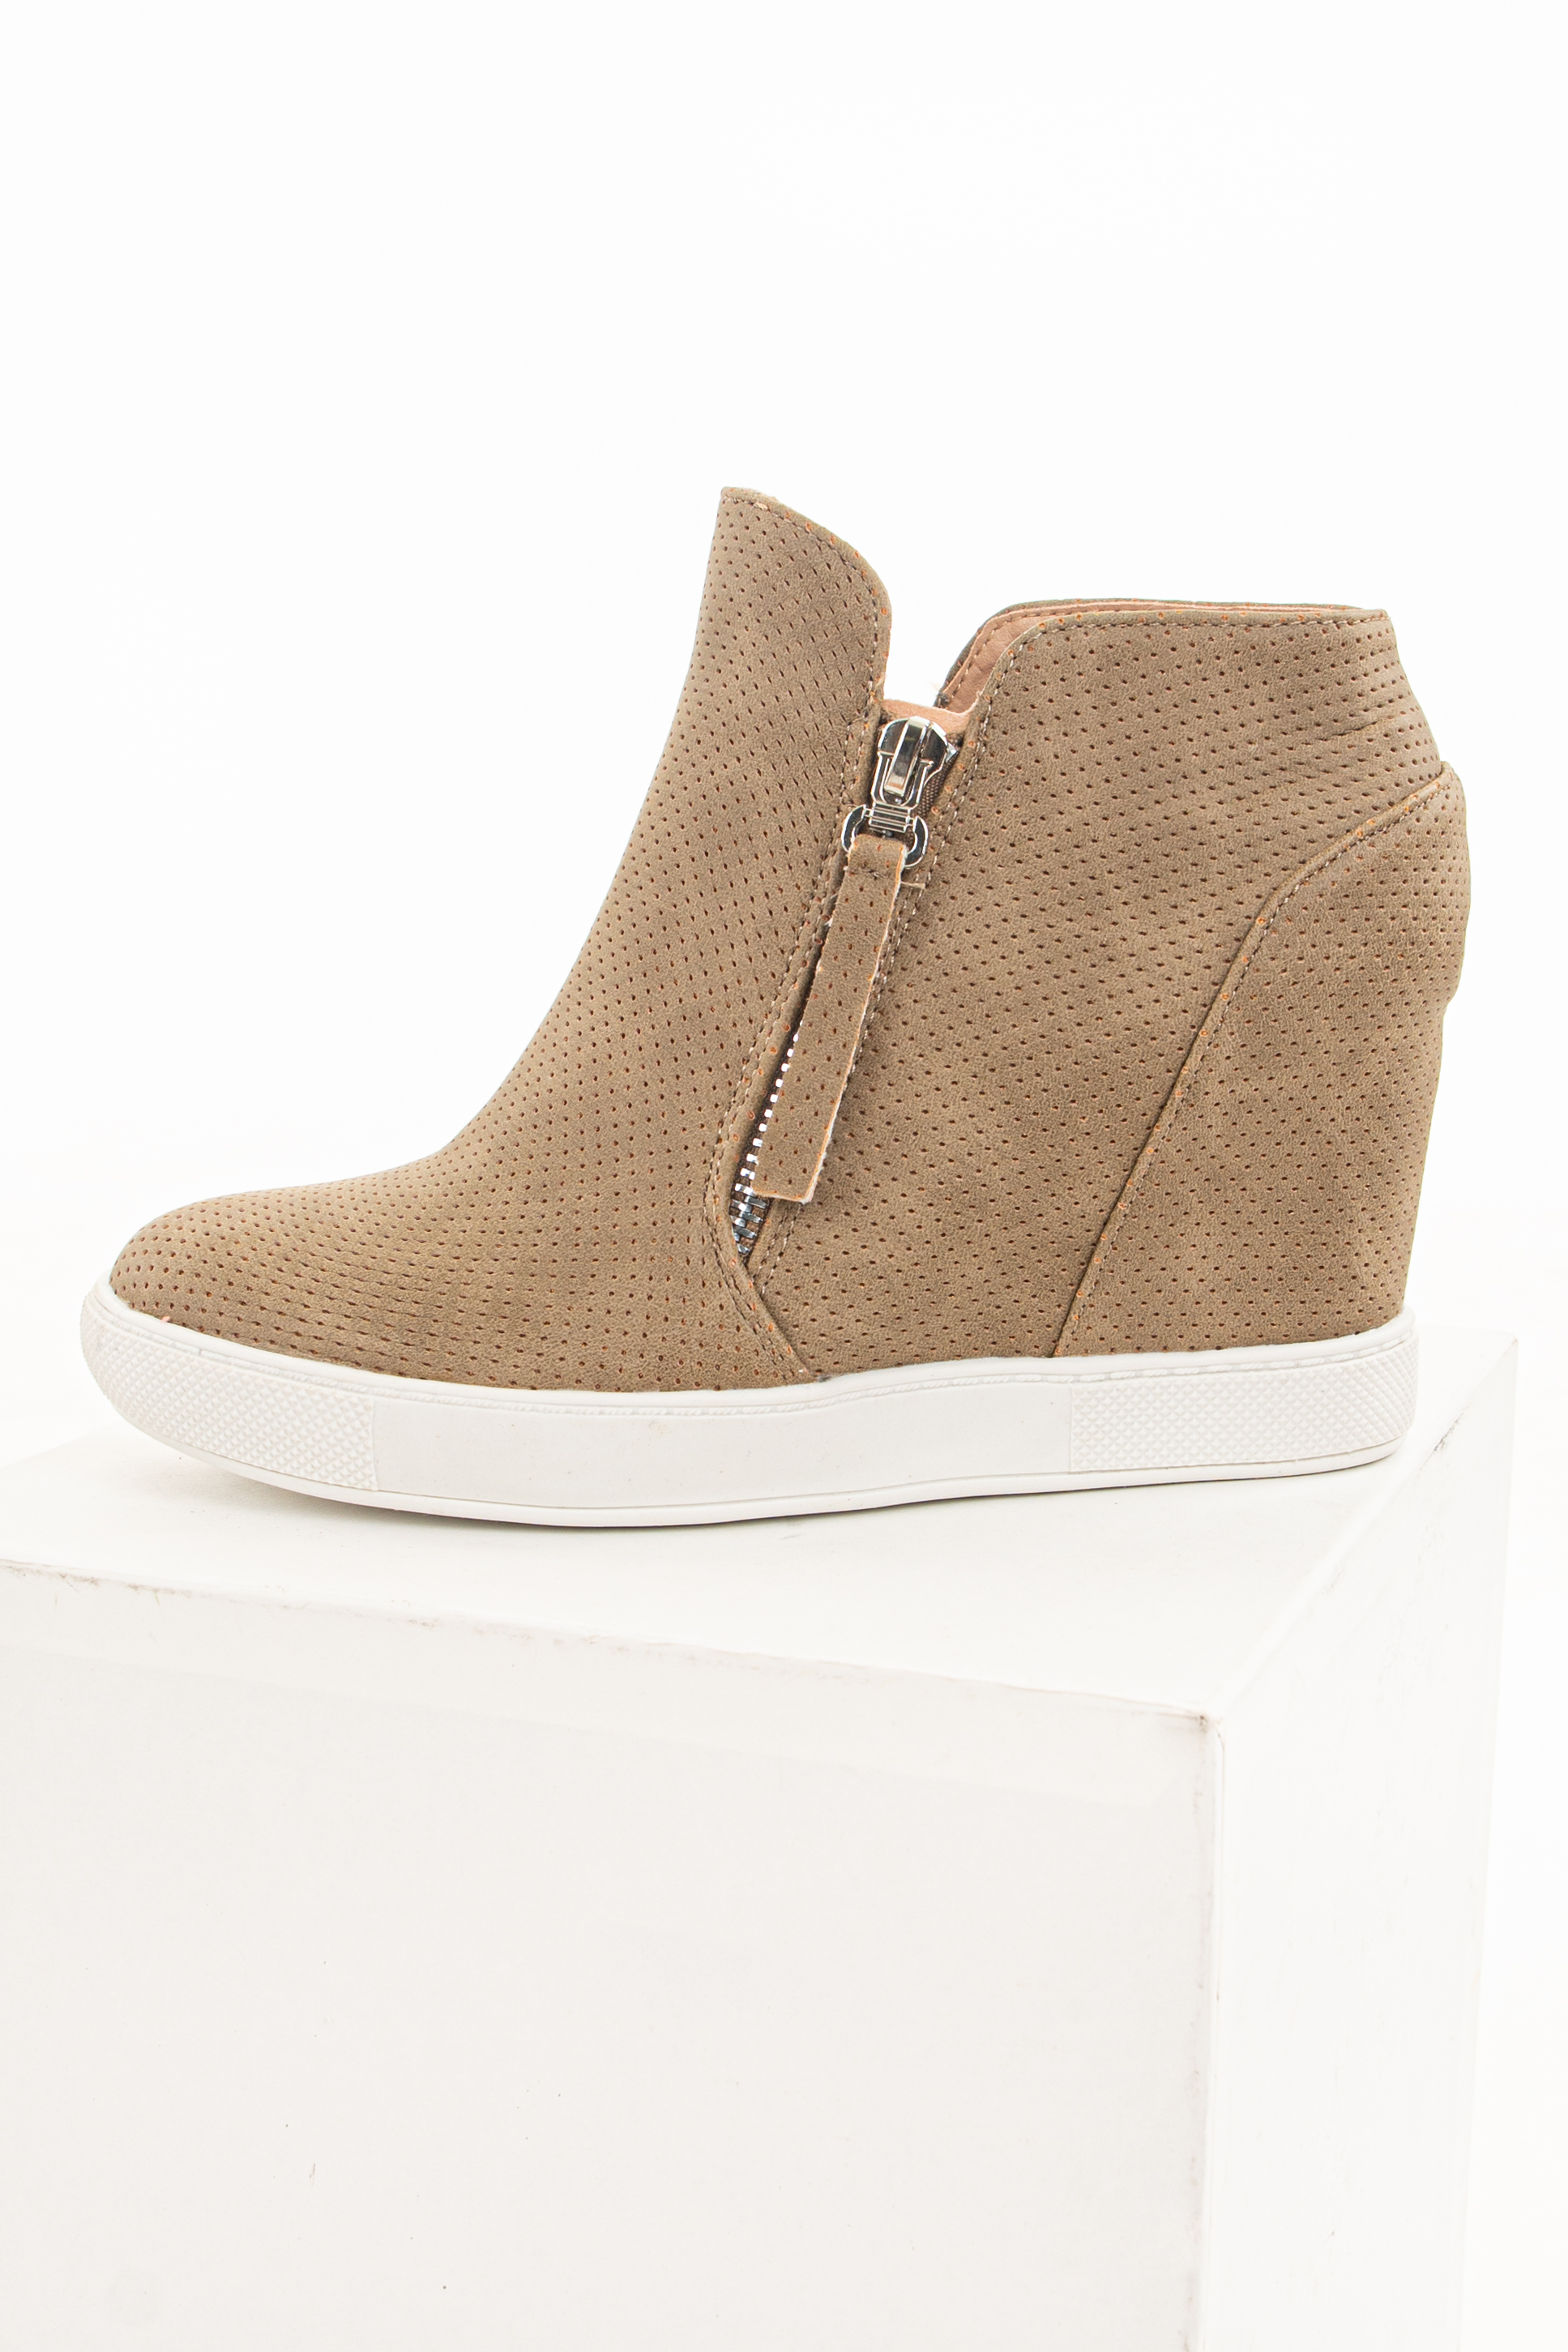 Camel Wedge Sneaker with Side Zippers and Perforated Detail